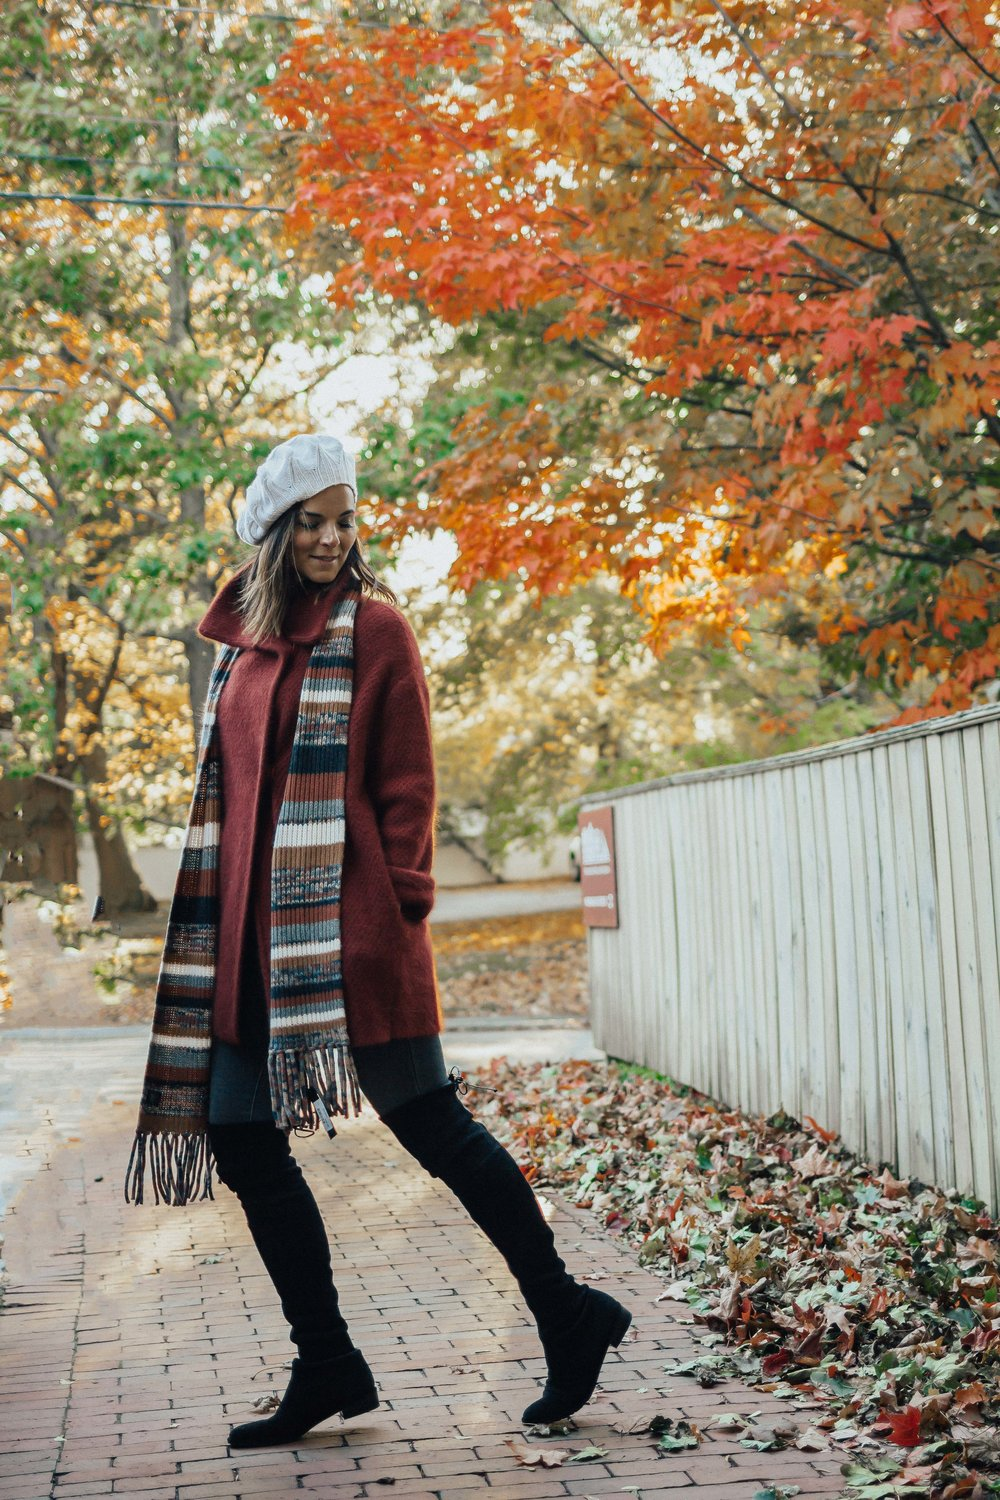 Fall Outfit Idea – Beret Outfit Ideas – Chic Hats for Fall- Fashion for Women – Fall Hat Outfits – Cape Outfits for Fall – OTK Boot Outfit Ideas – Beret Outfit for Women- Fedora Hats for Women – Best Hats for Fall – Fall Hat Ideas - #heartandseam  www.heartandseam.com